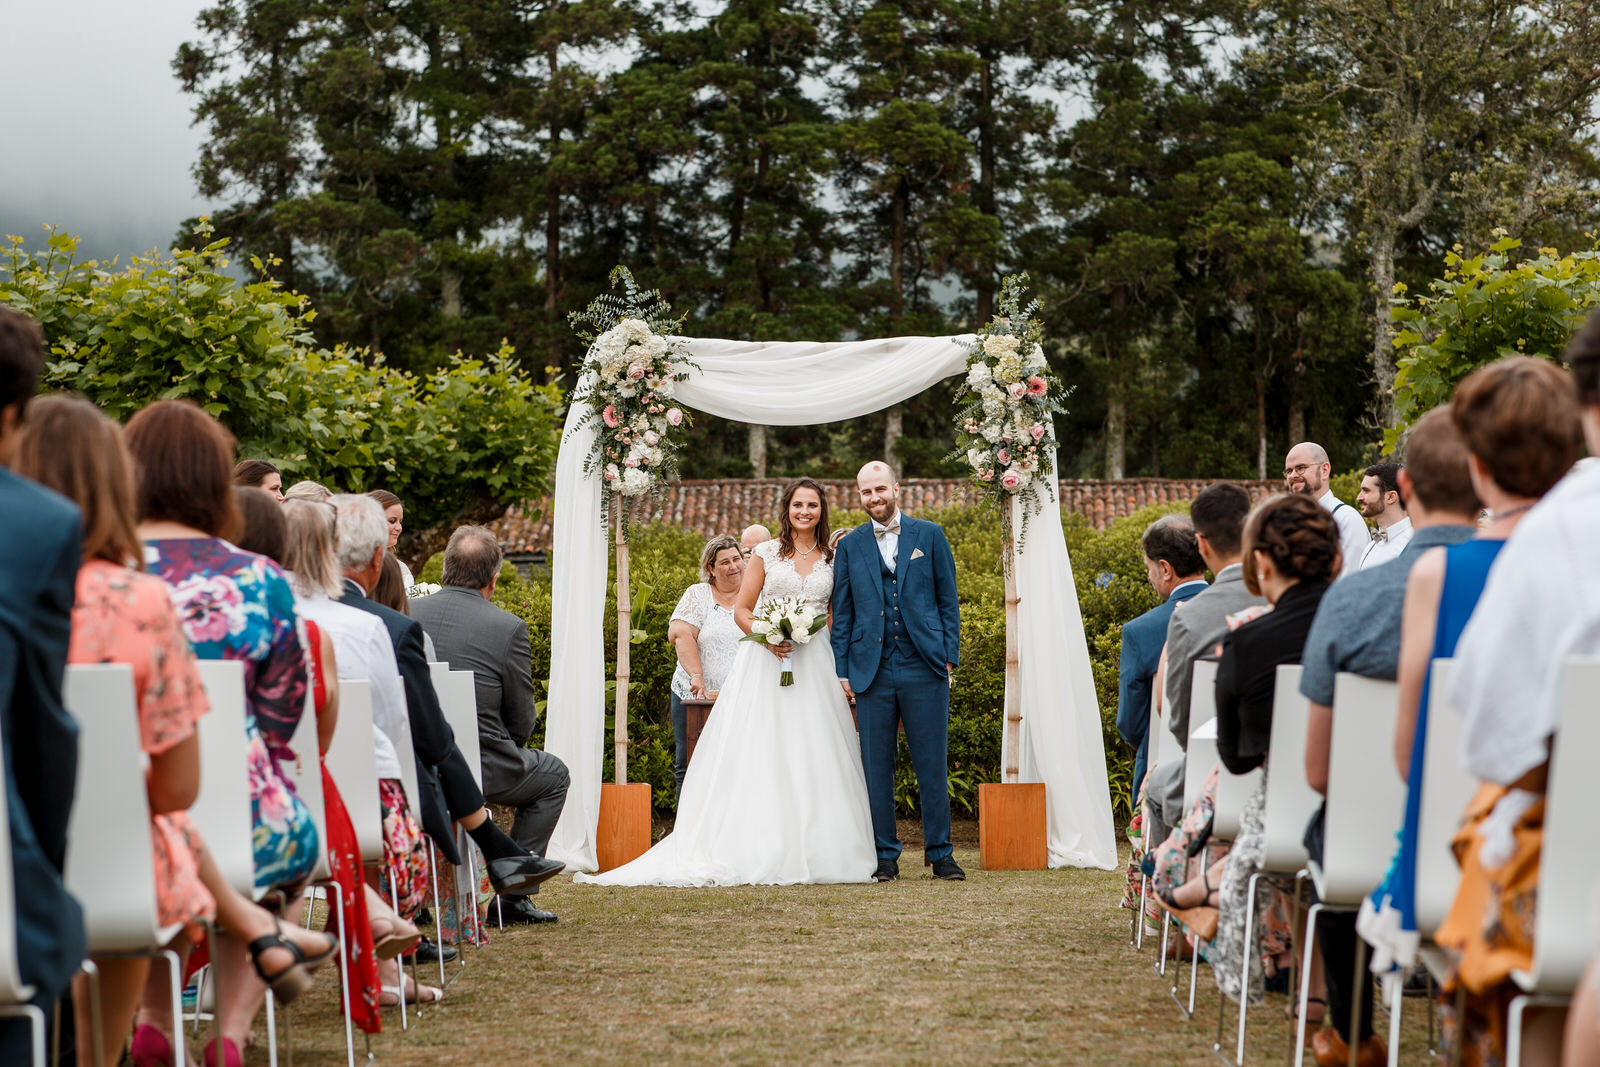 bride and groom at altar in garden wedding